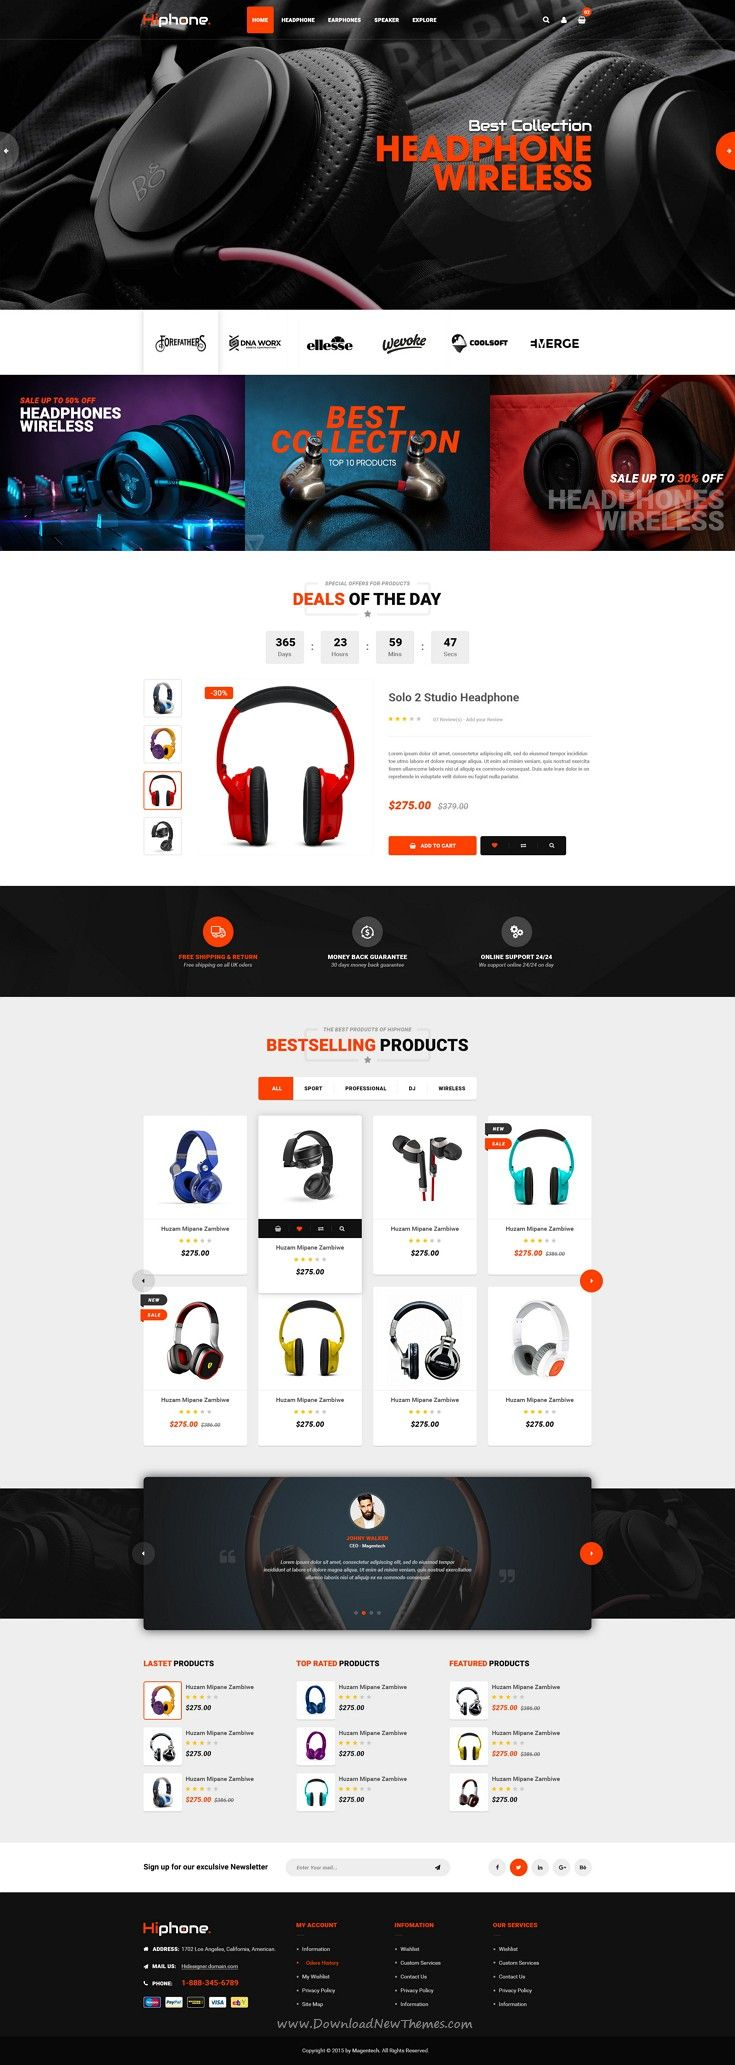 HiPhone is perfect PSD Template for any types of eCommerce websites from simple to complex projects. Download Now!